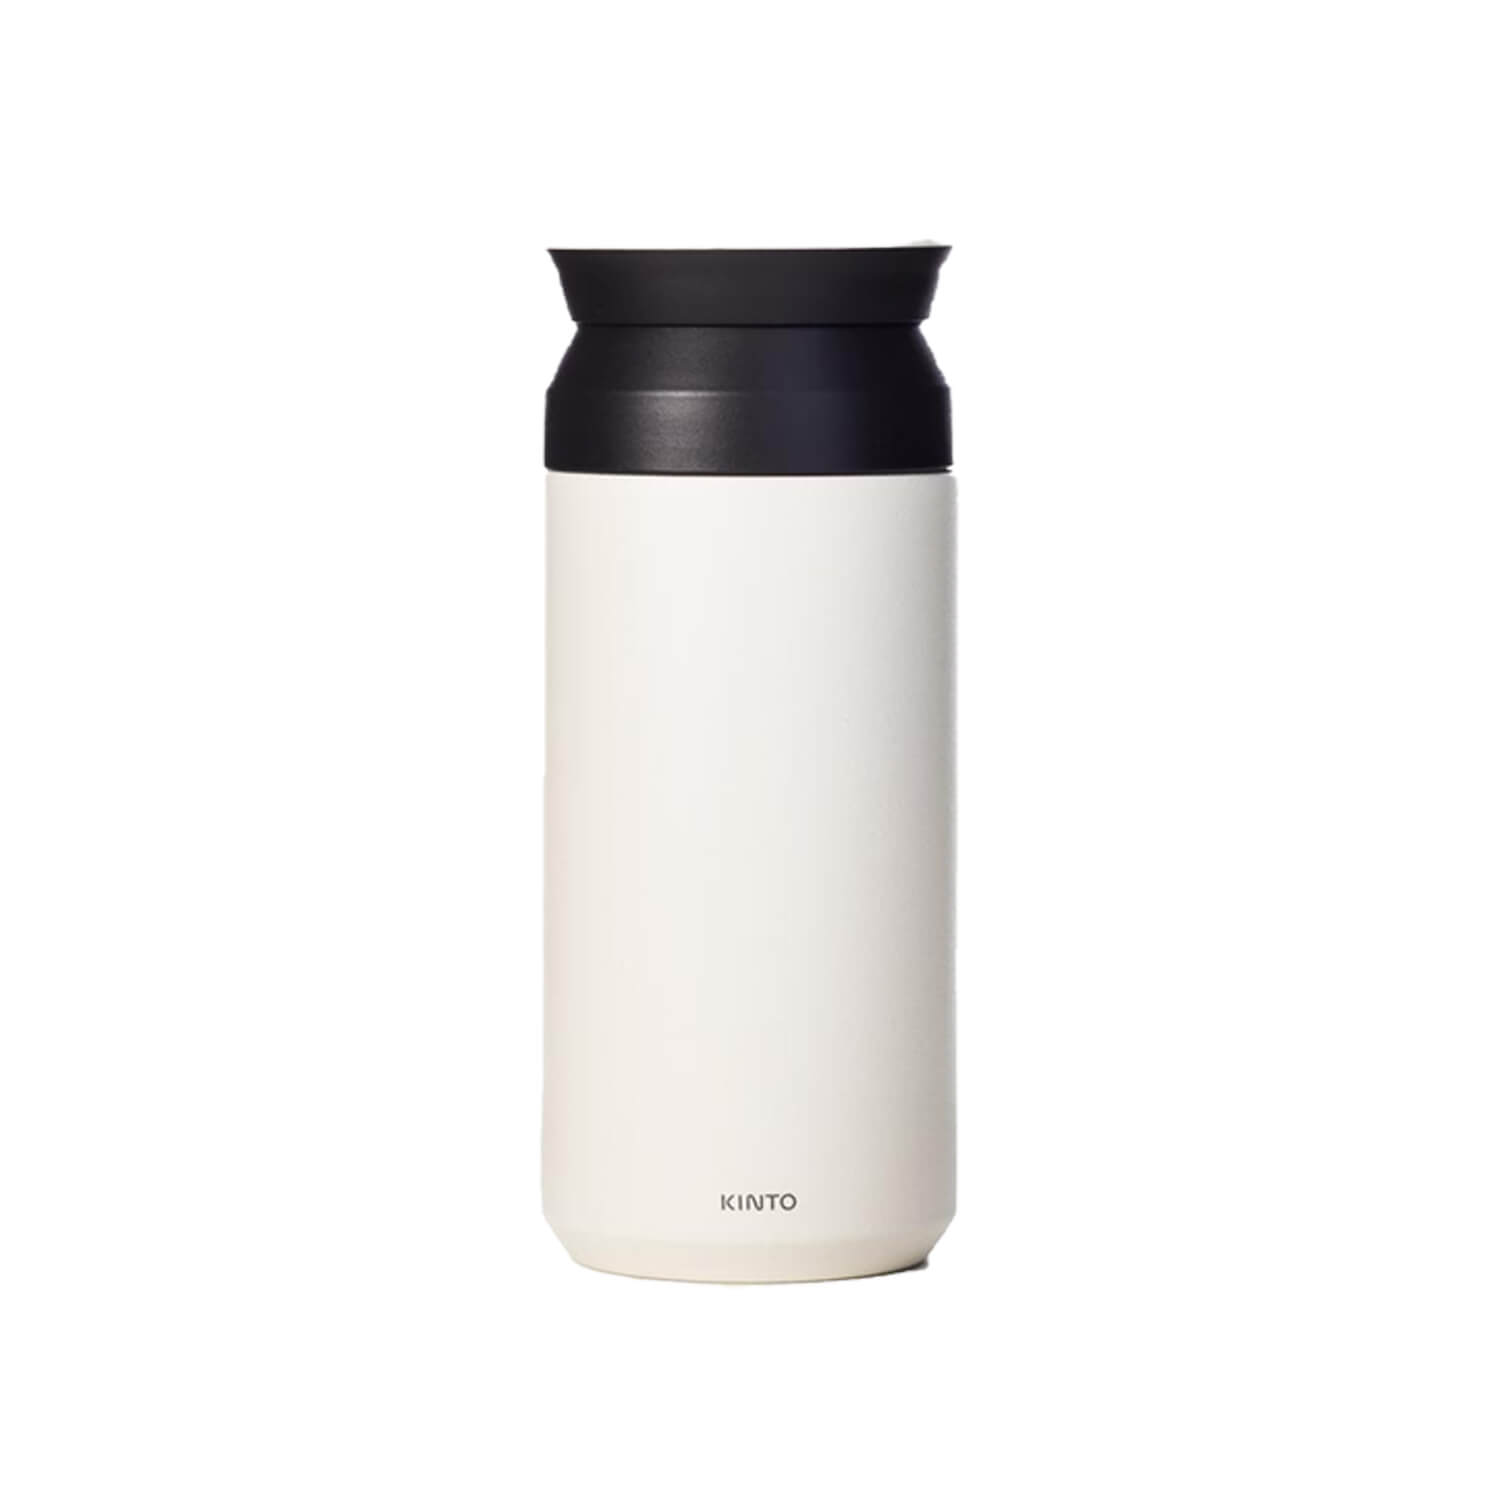 Kinto - Travel Tumbler White - 350 ml